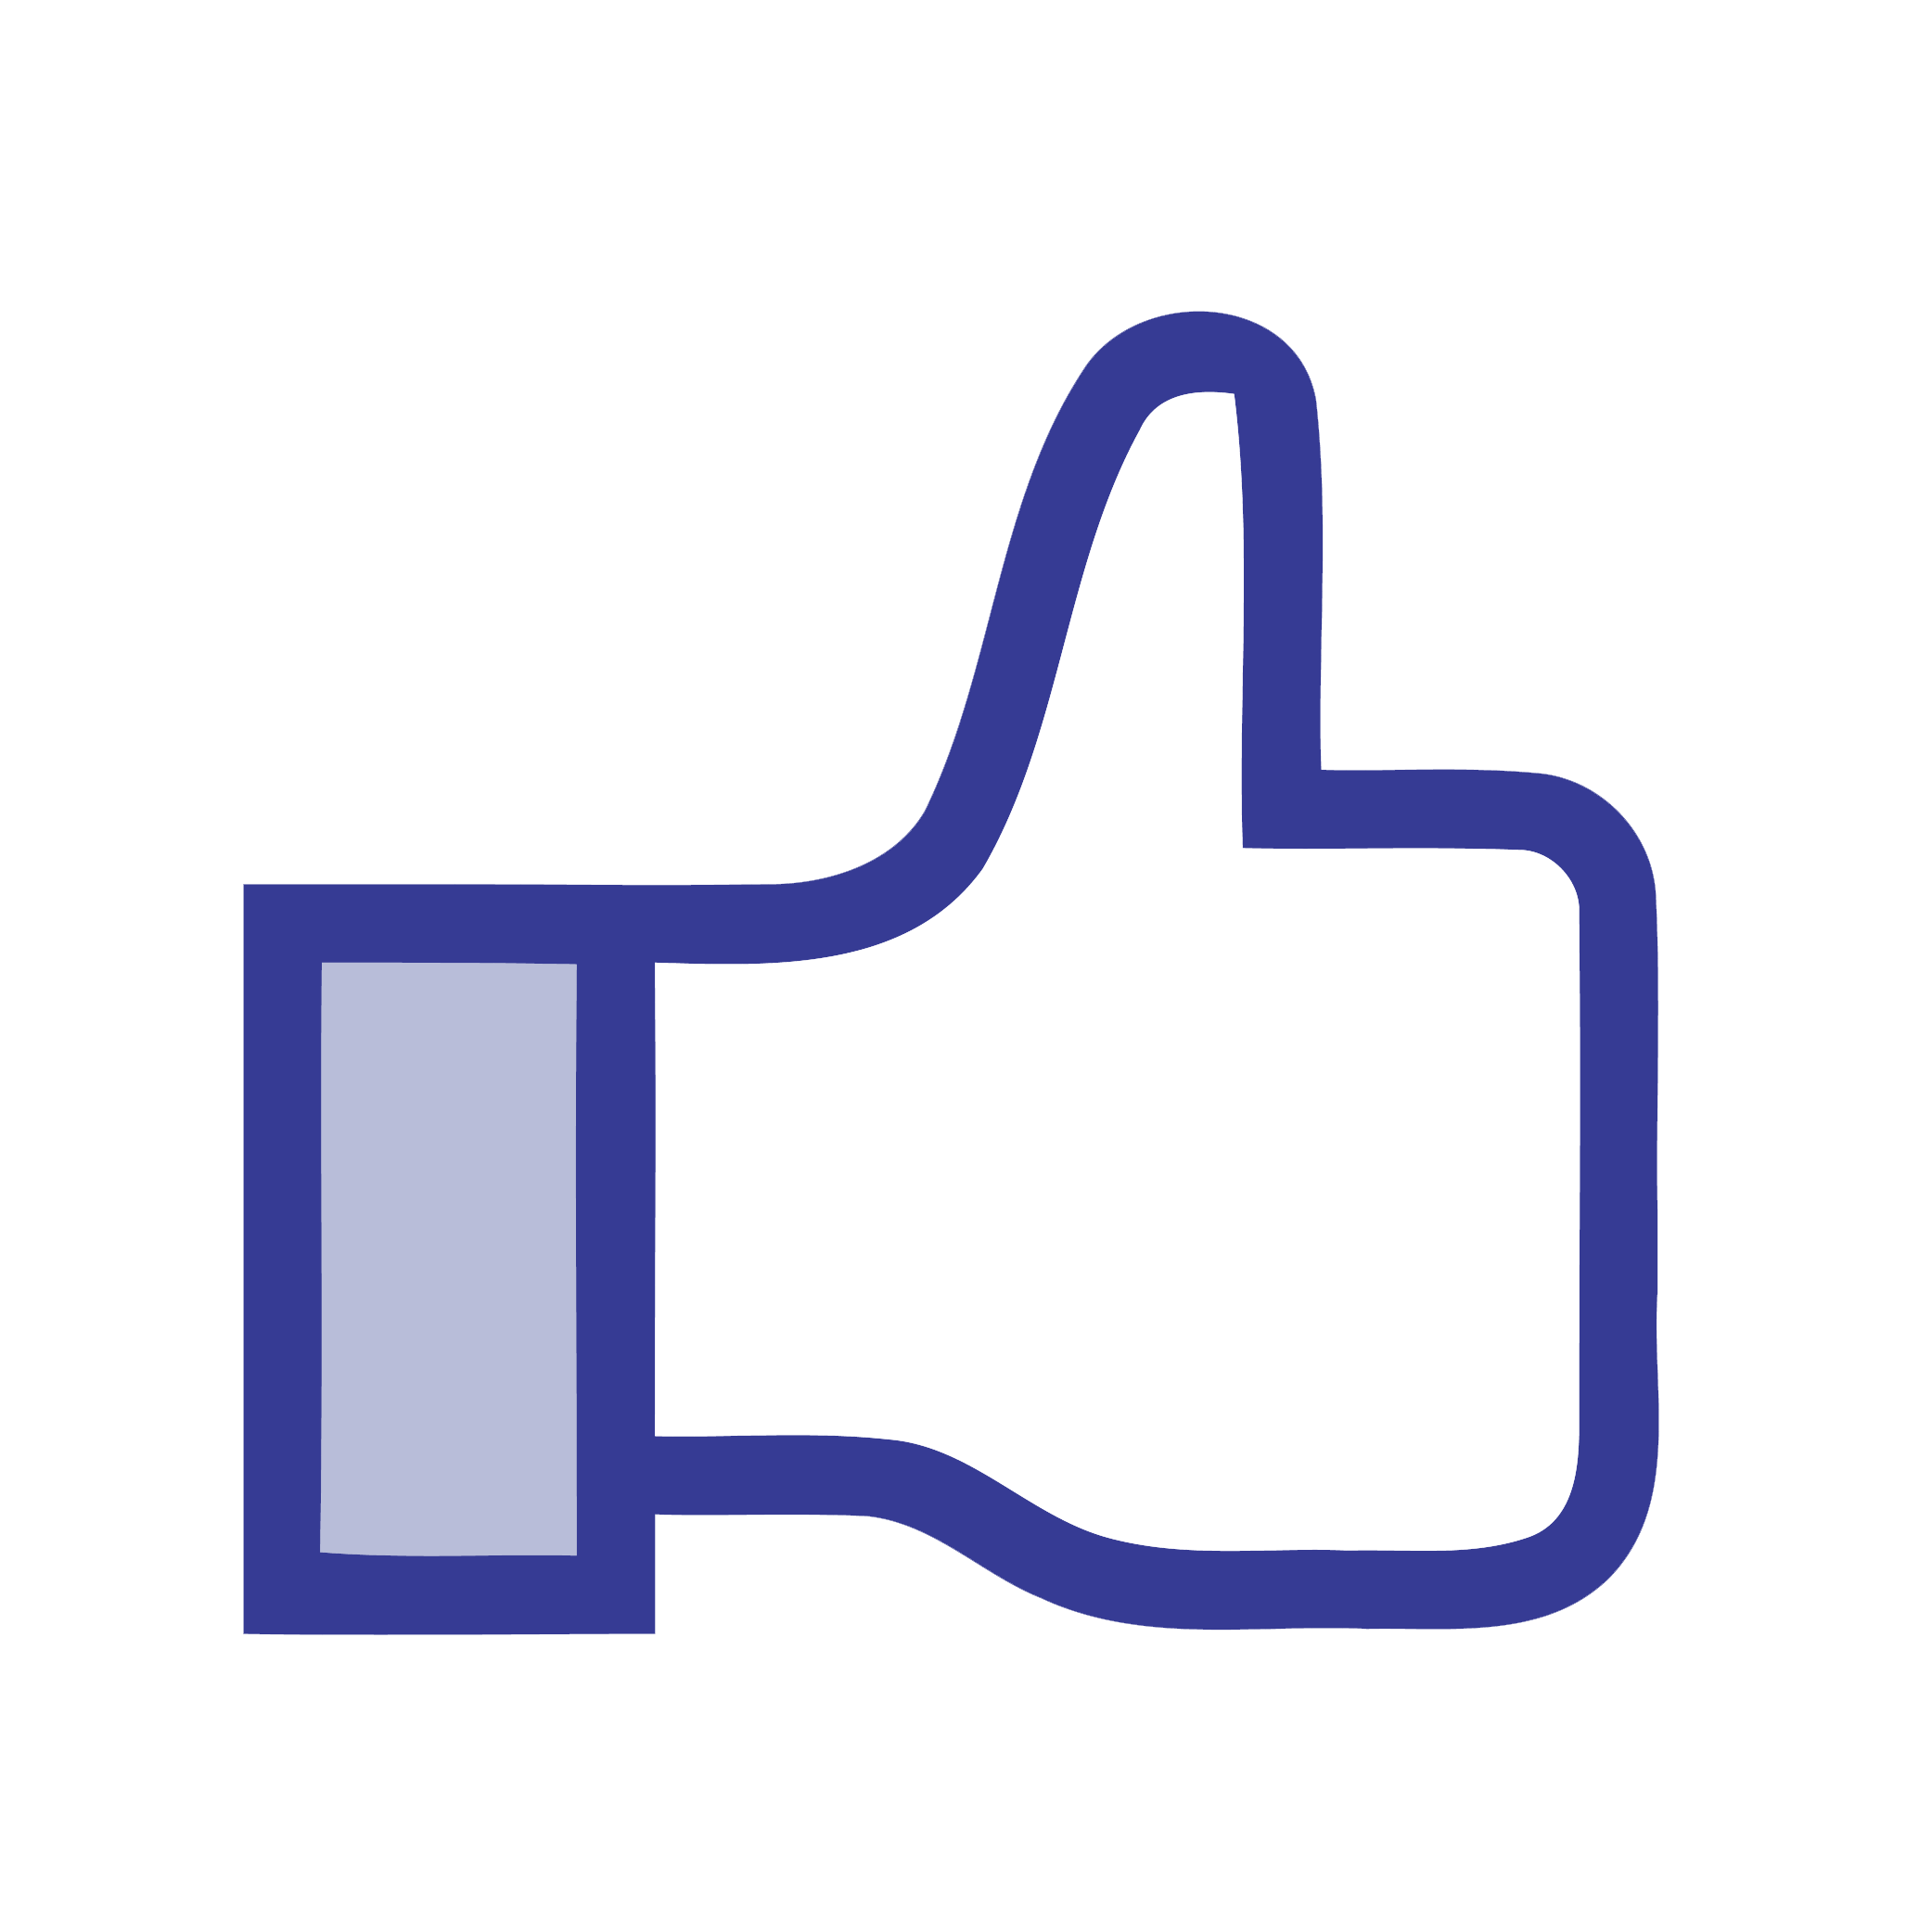 facebook like icon clipart transparent 10 free Cliparts ... - Like-Button Transparent